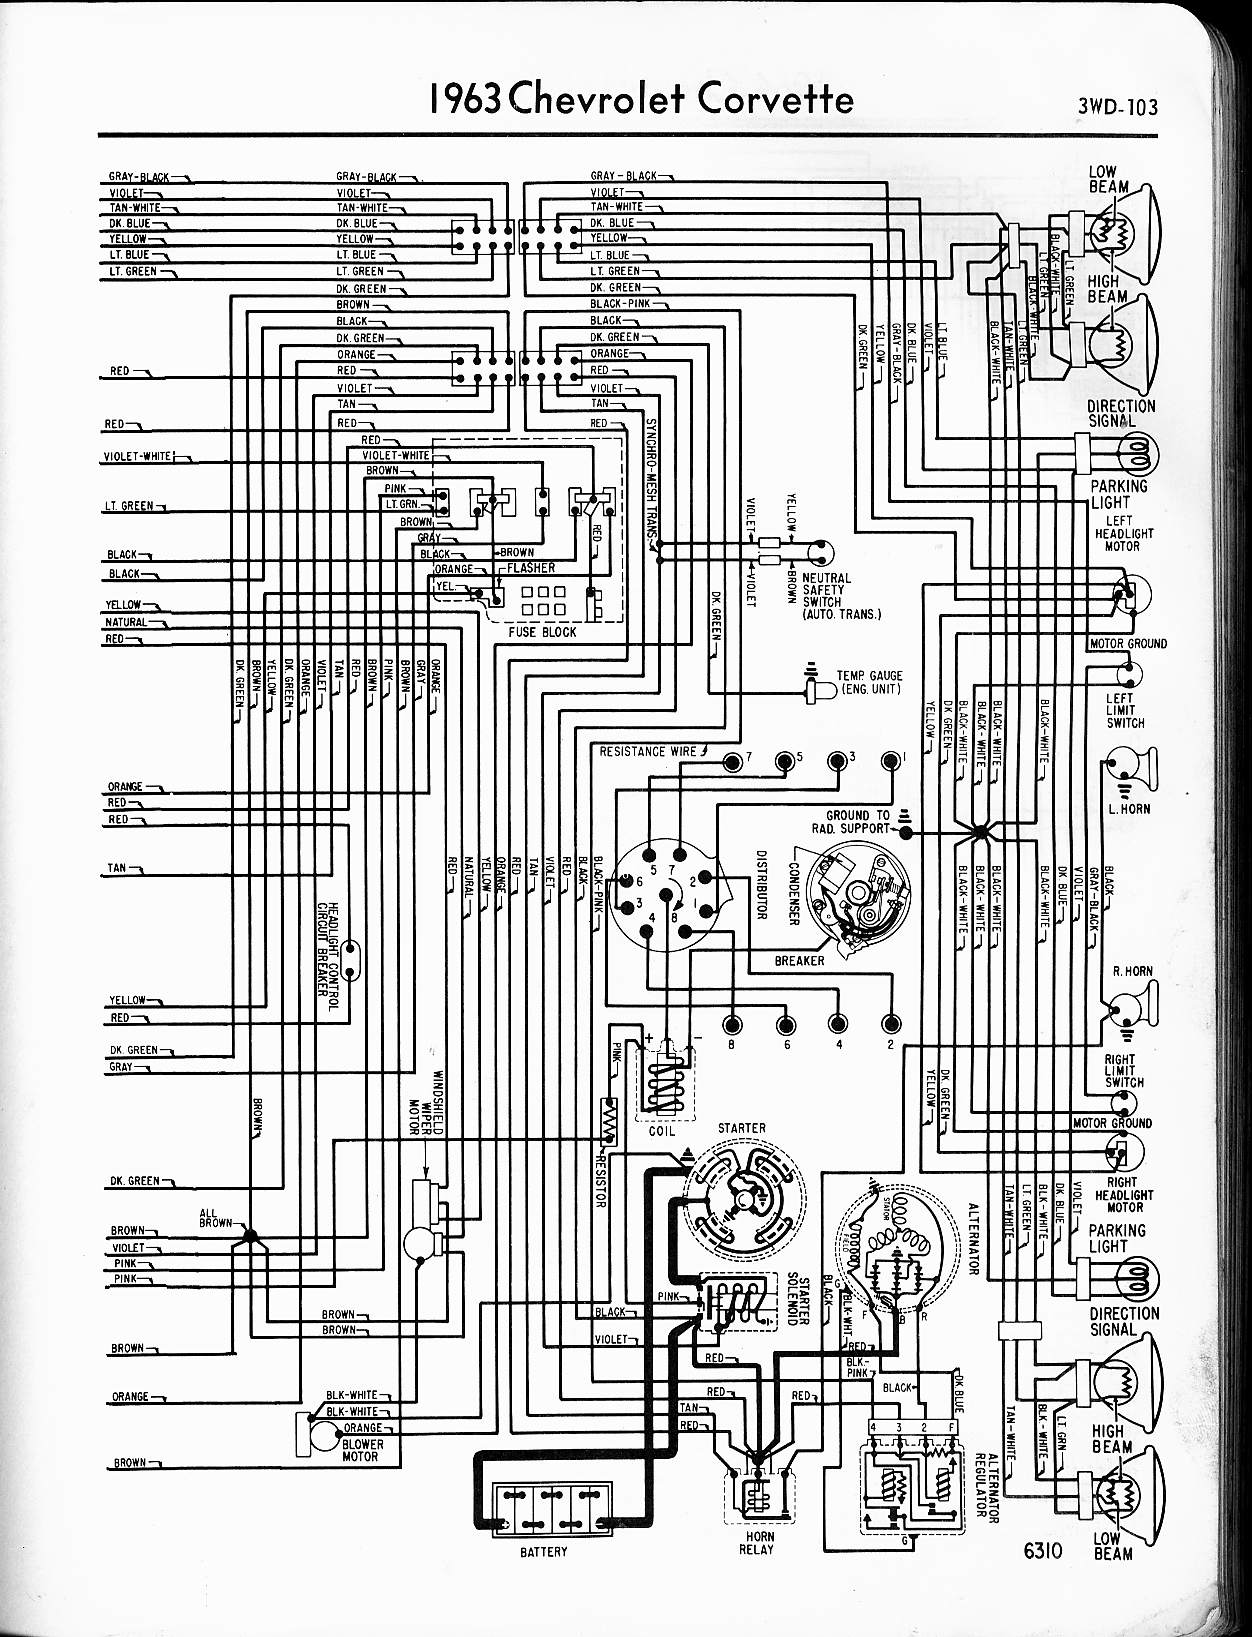 MWireChev63_3WD 103 57 65 chevy wiring diagrams corvette wiring diagram at gsmportal.co